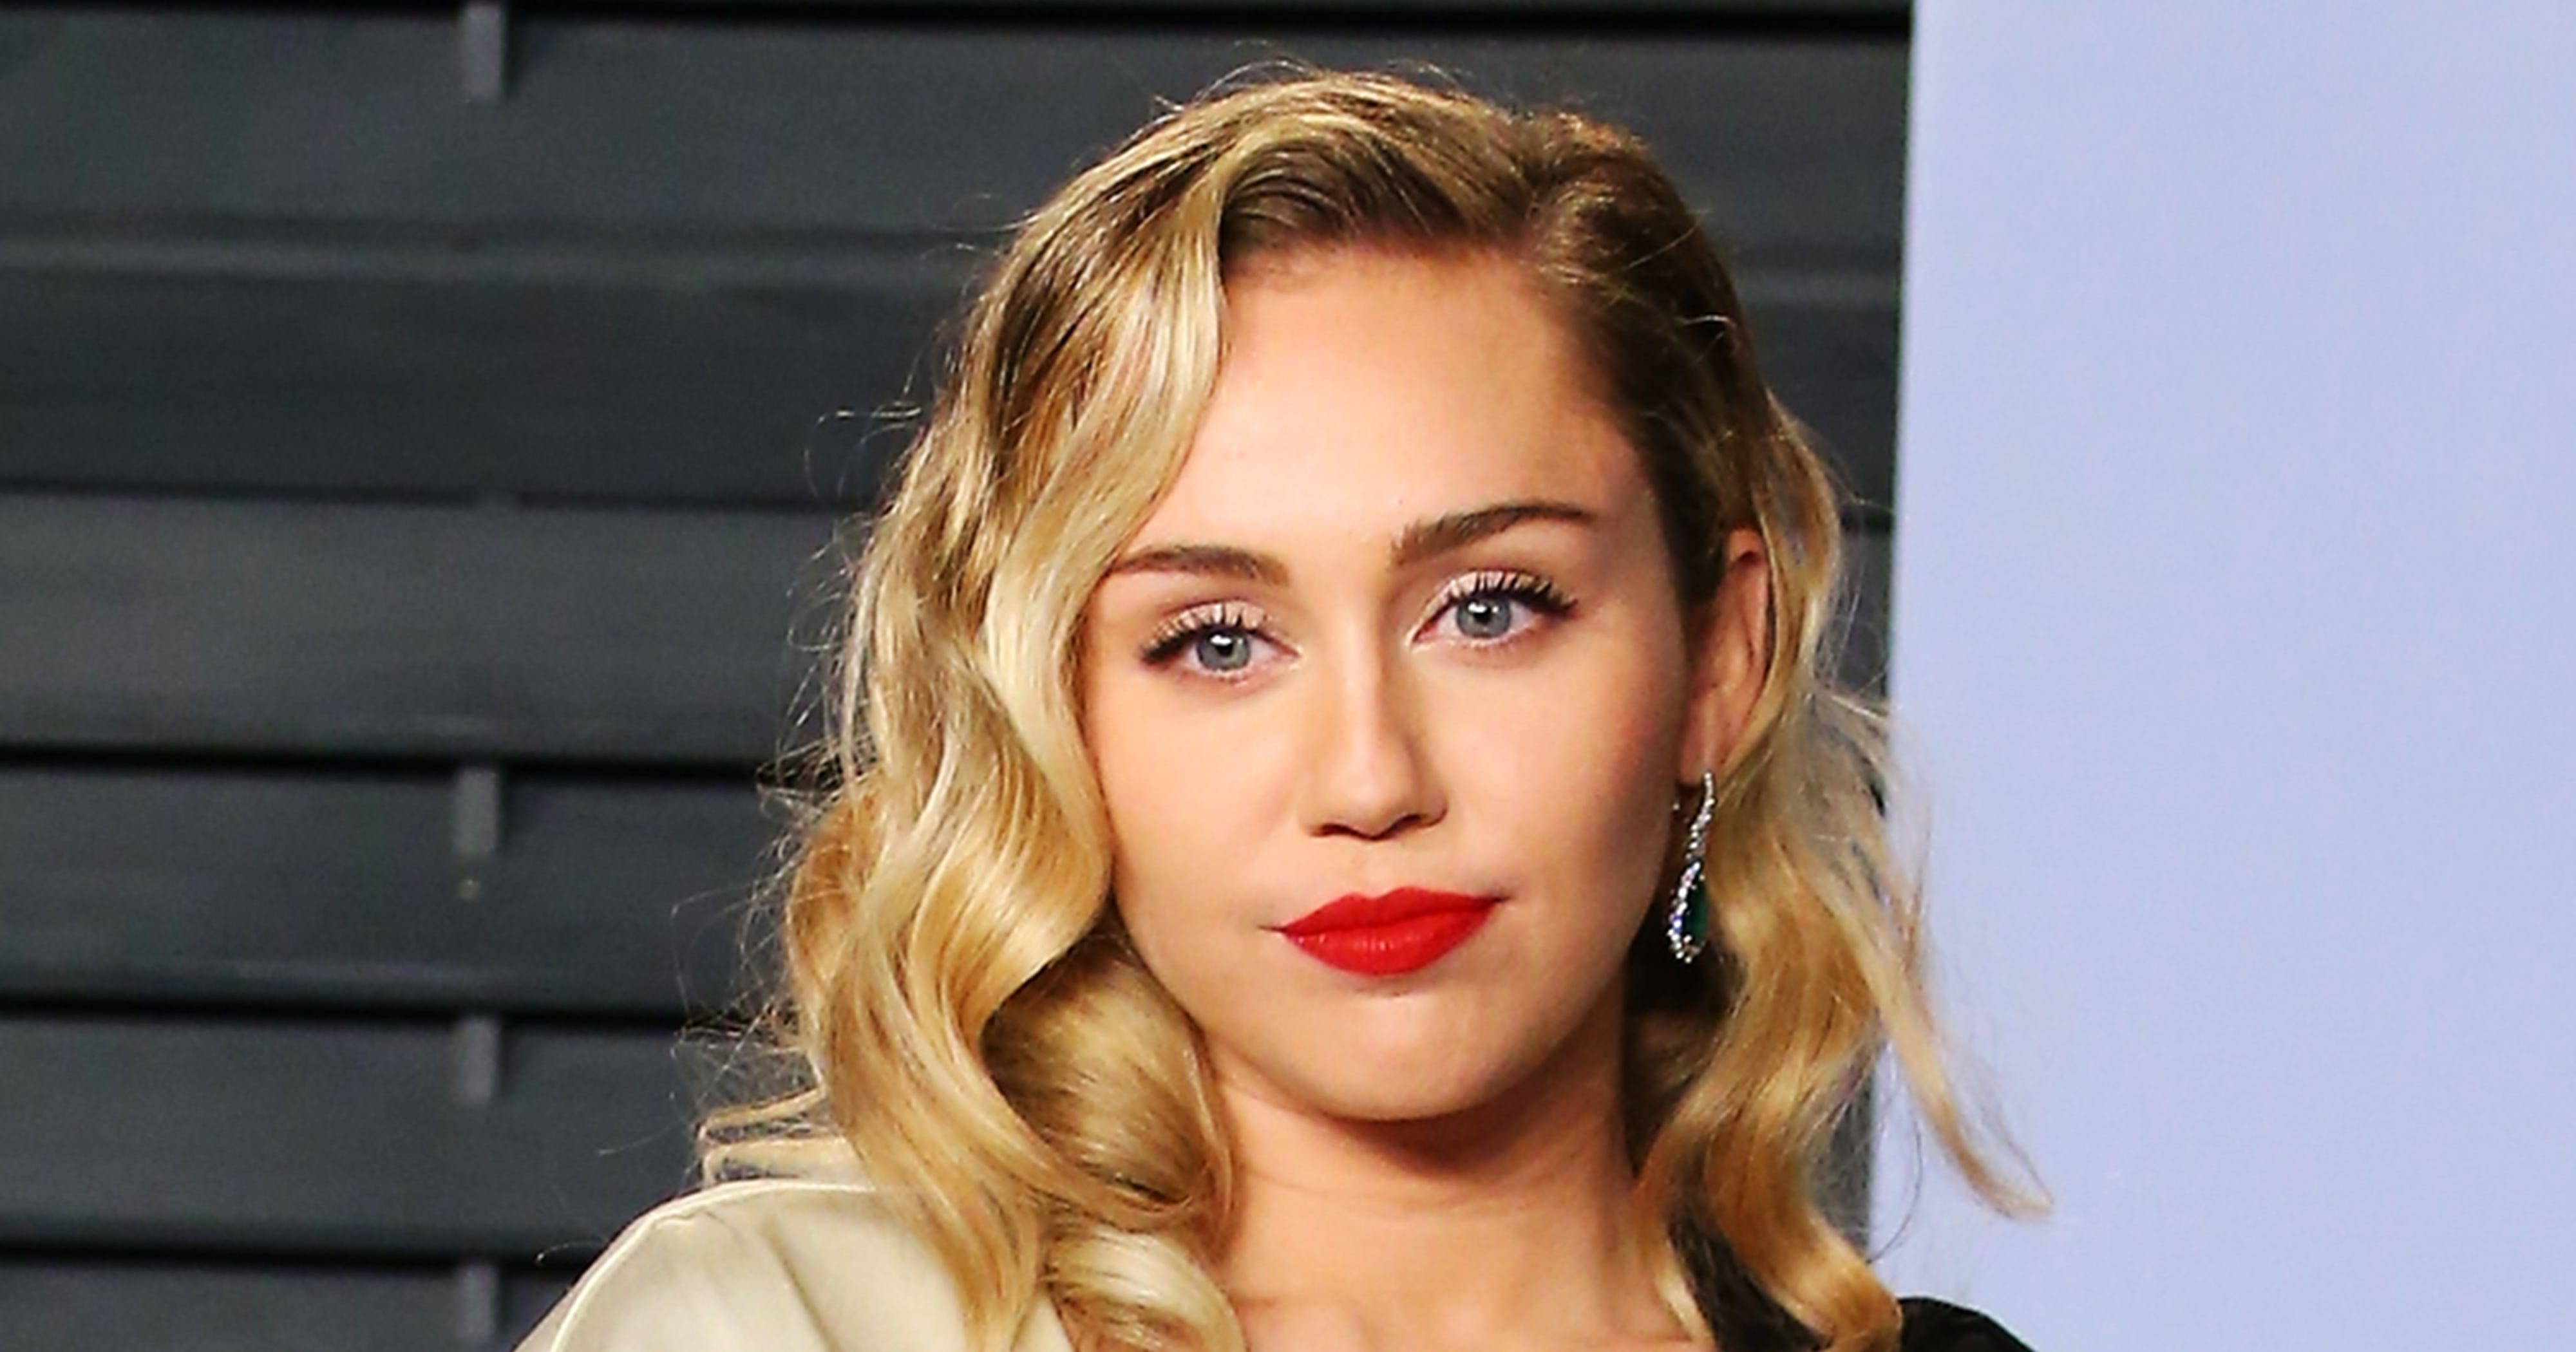 Miley Cyrus Nothing Breaks Like A Heart Political Video